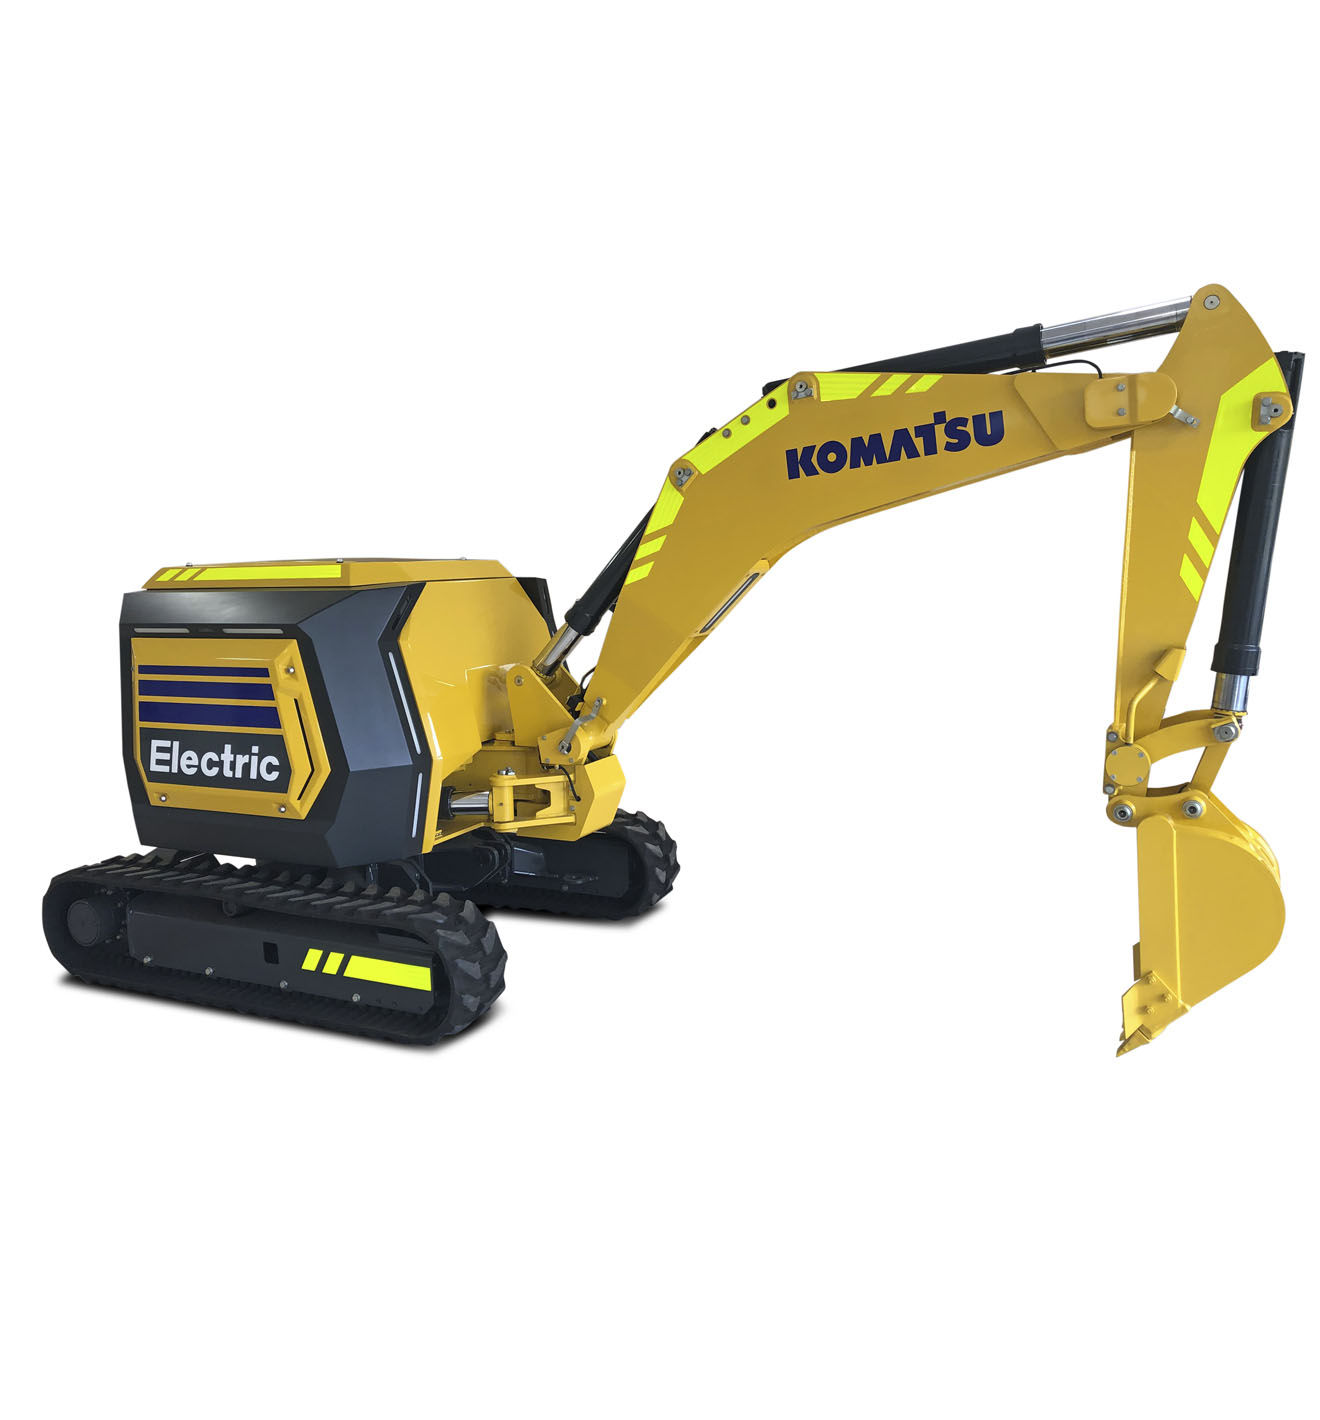 Announcing the concept machine of Komatsu's first fully electric and remote-controlled mini excavator powered by lithium-ion battery